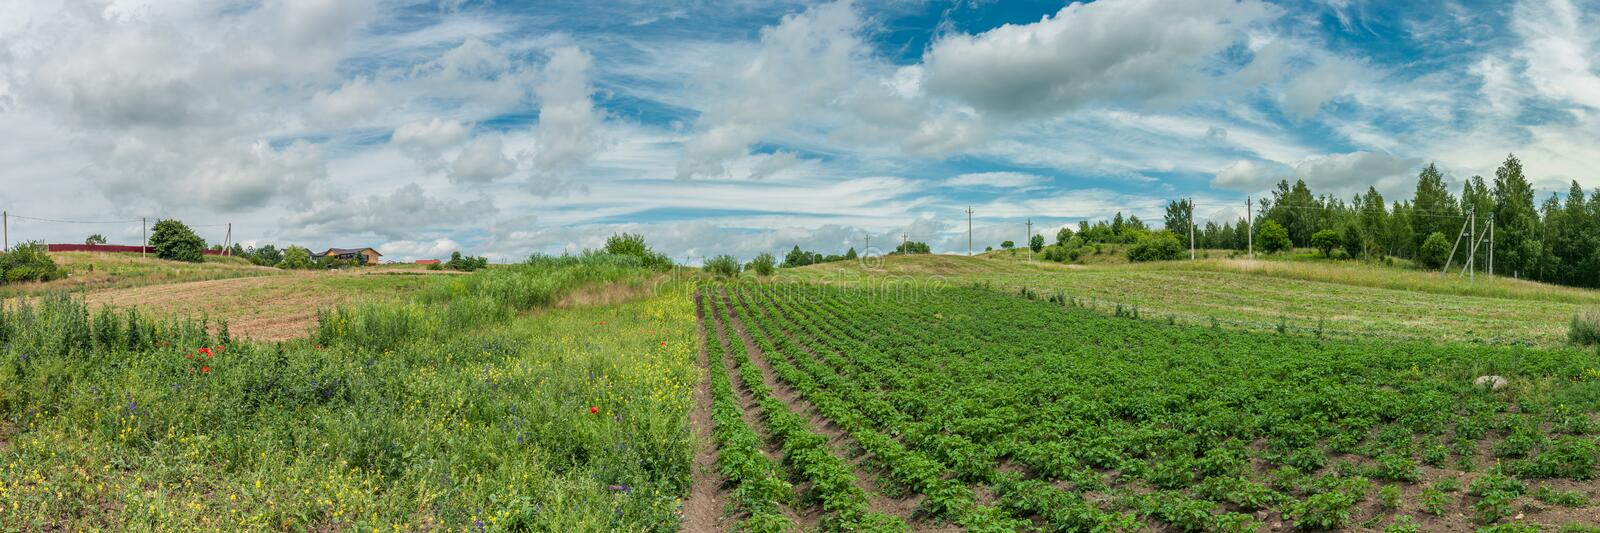 old rural landscape. panoramic view of private farmland royalty free stock photo